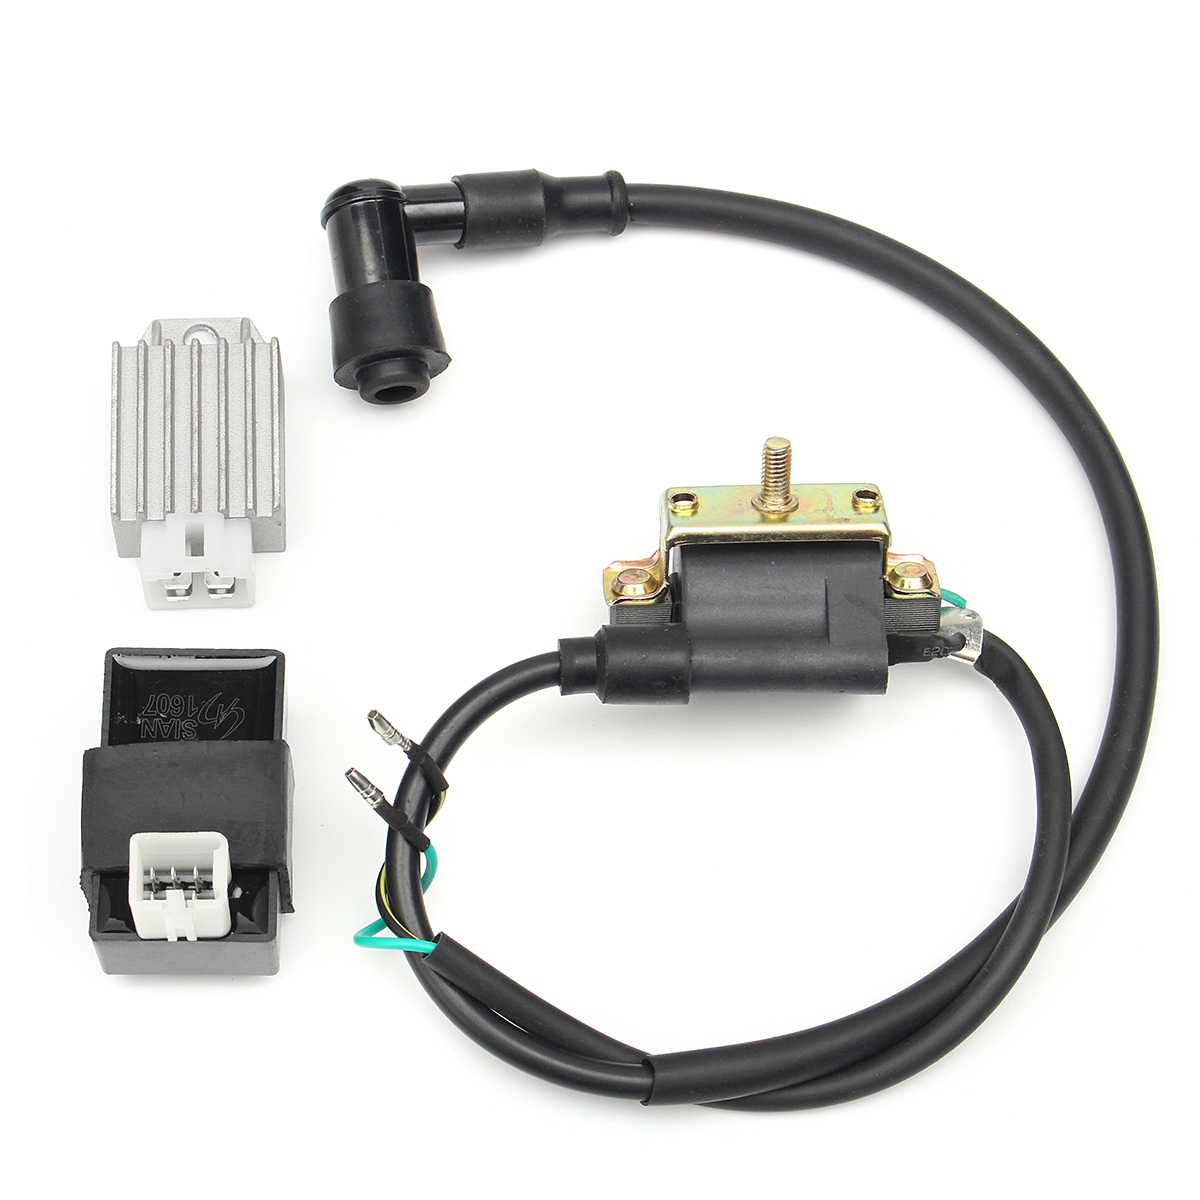 Ignition Coil+CDI+Regulator For 90cc 110cc 125cc PIT Quad Dirt Bike ATV Buggy